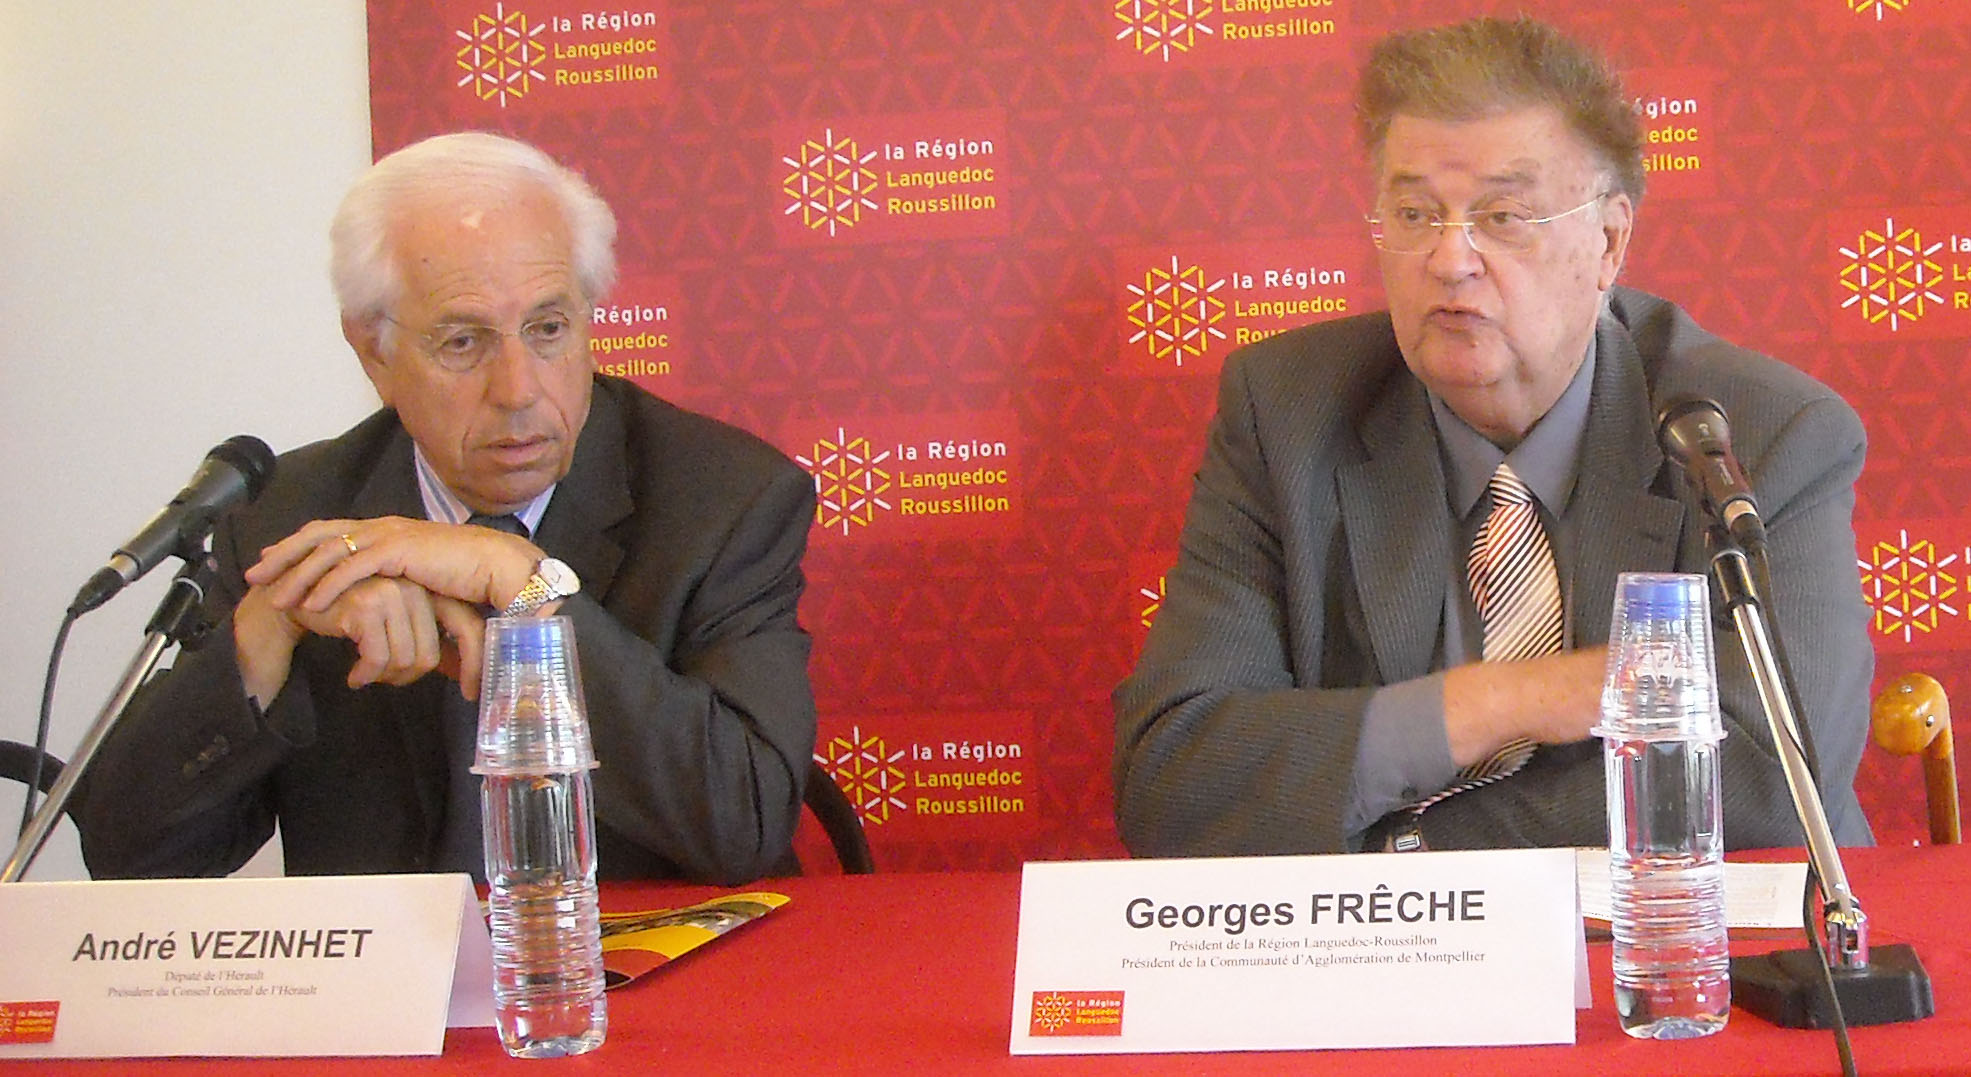 André Vezinhet et Georges Frêche le 20 mai 2009 (photo : Mj)